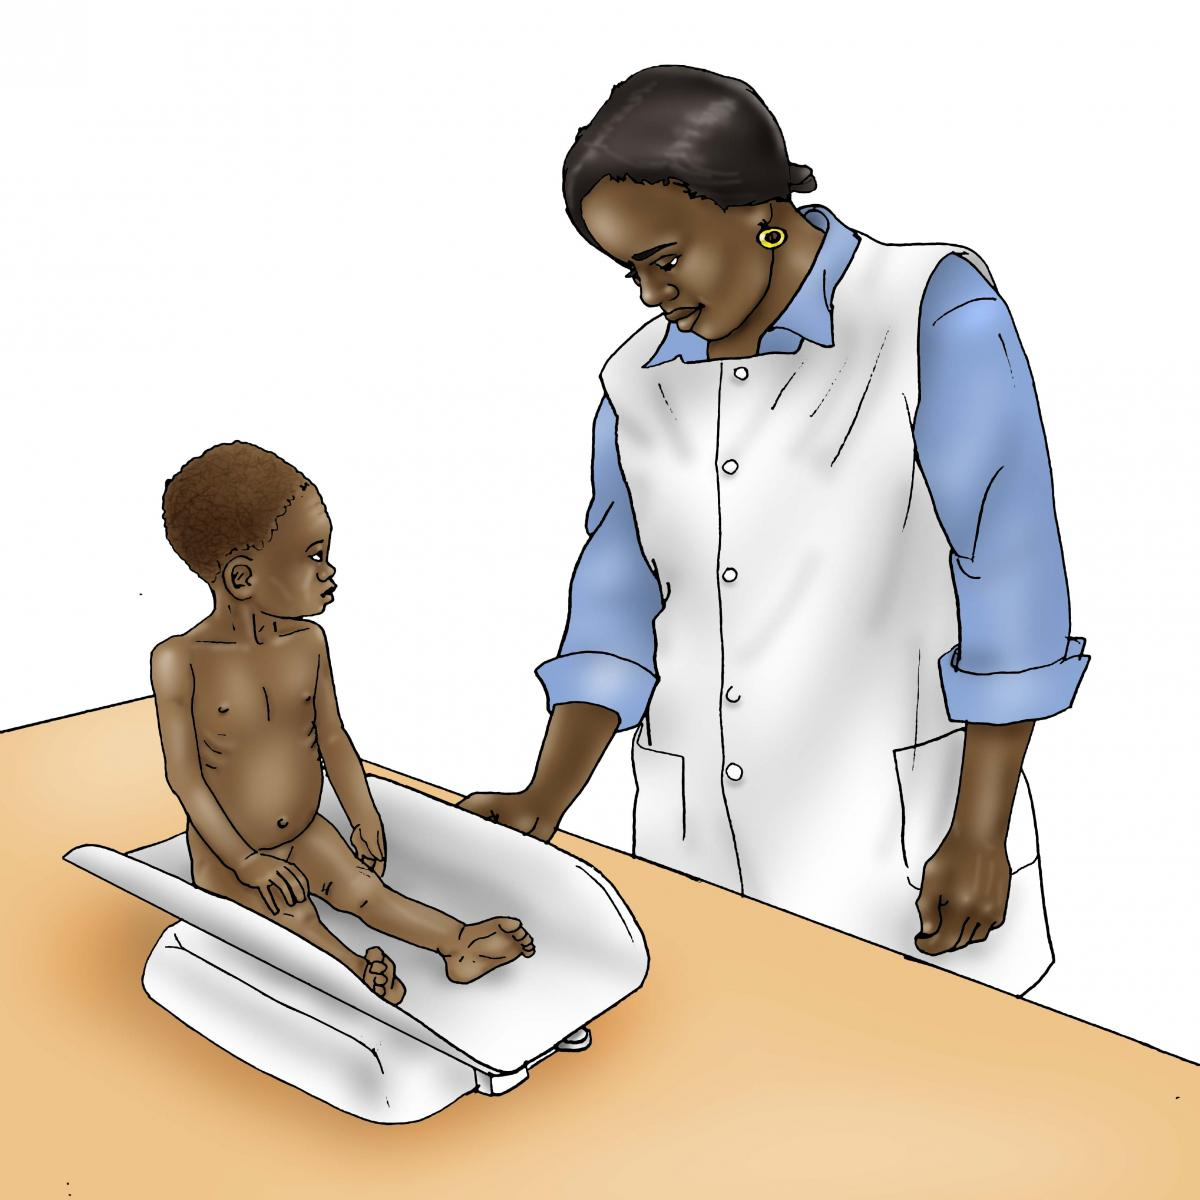 Sick Baby Health Care - Sick baby being weighed at clinic 9-12 mo - 02B - Non-country specific